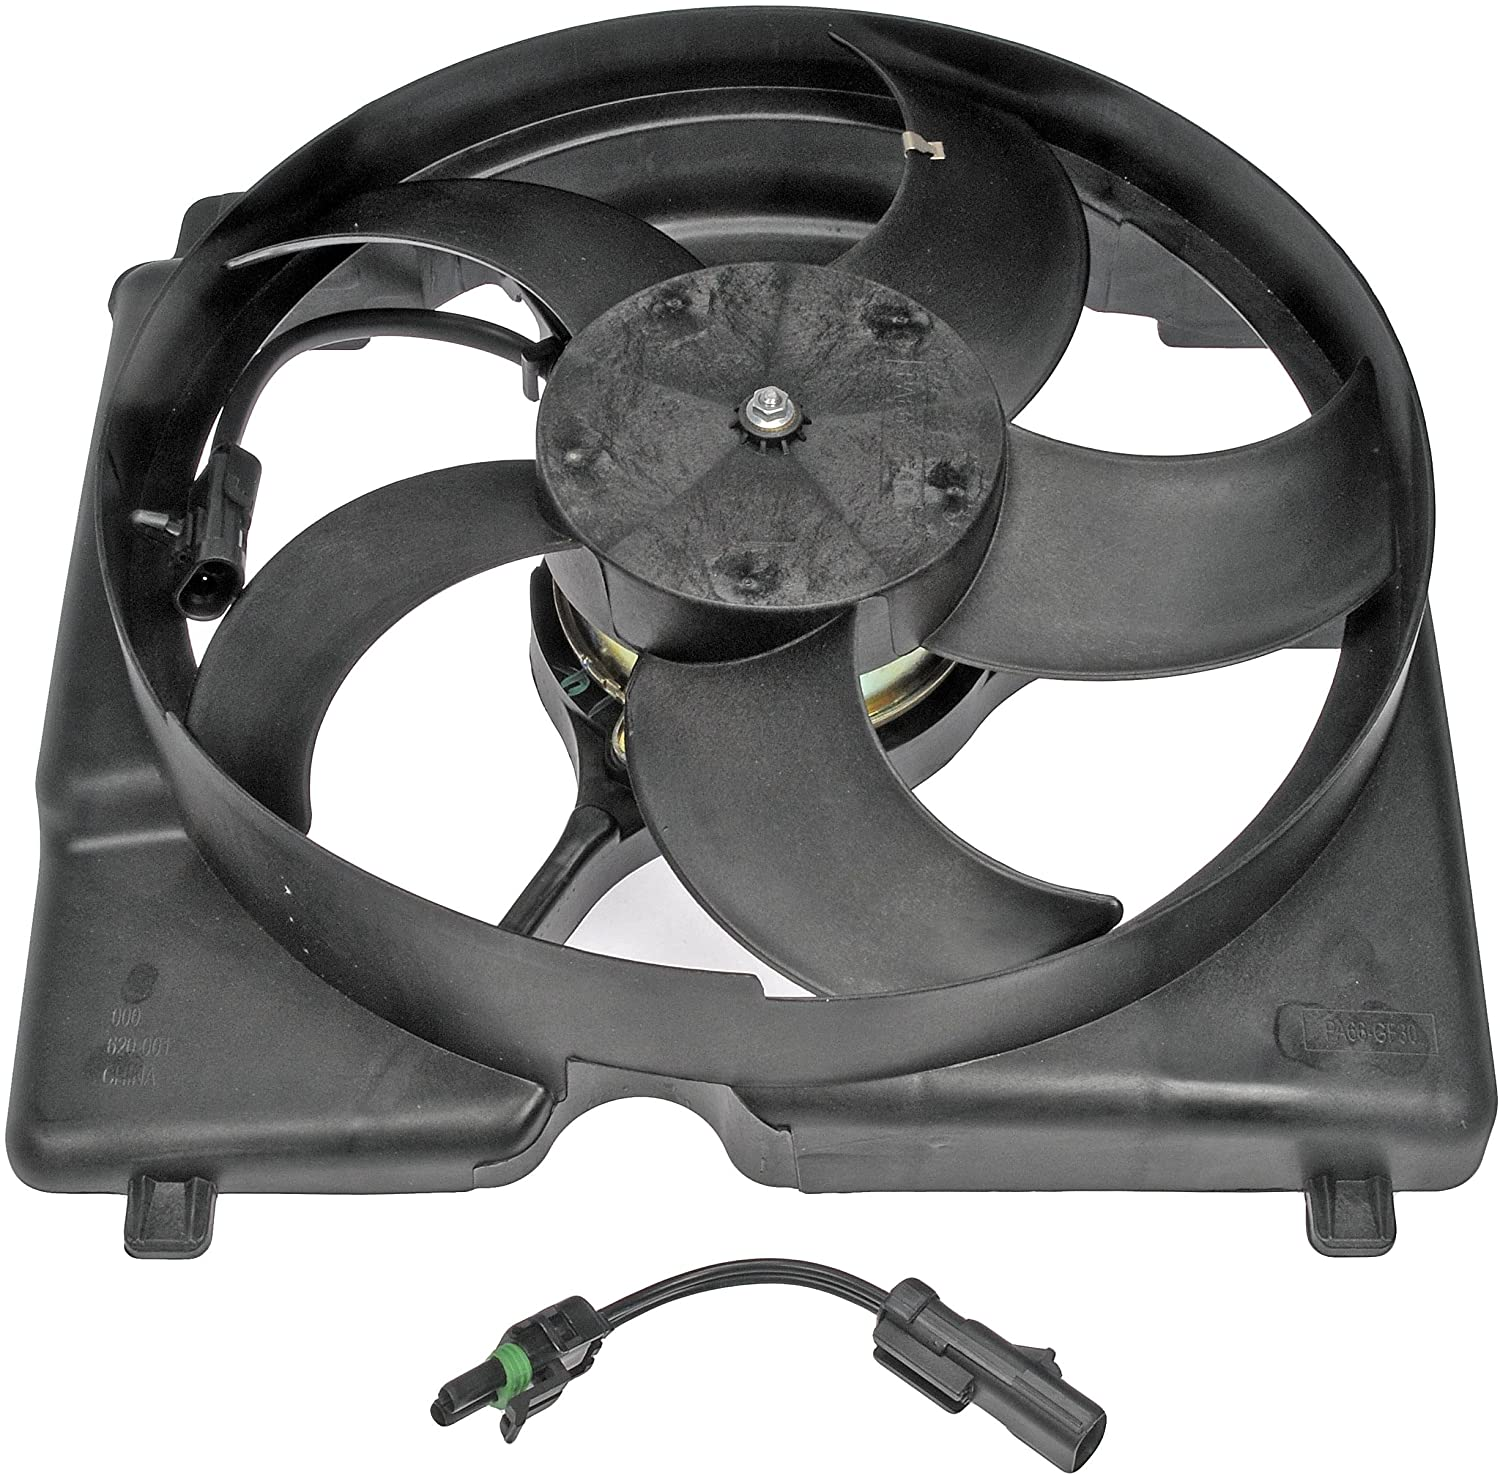 Dorman 620-001 Engine Cooling Max 56% OFF Fan for Jeep Assembly Model Select Luxury goods